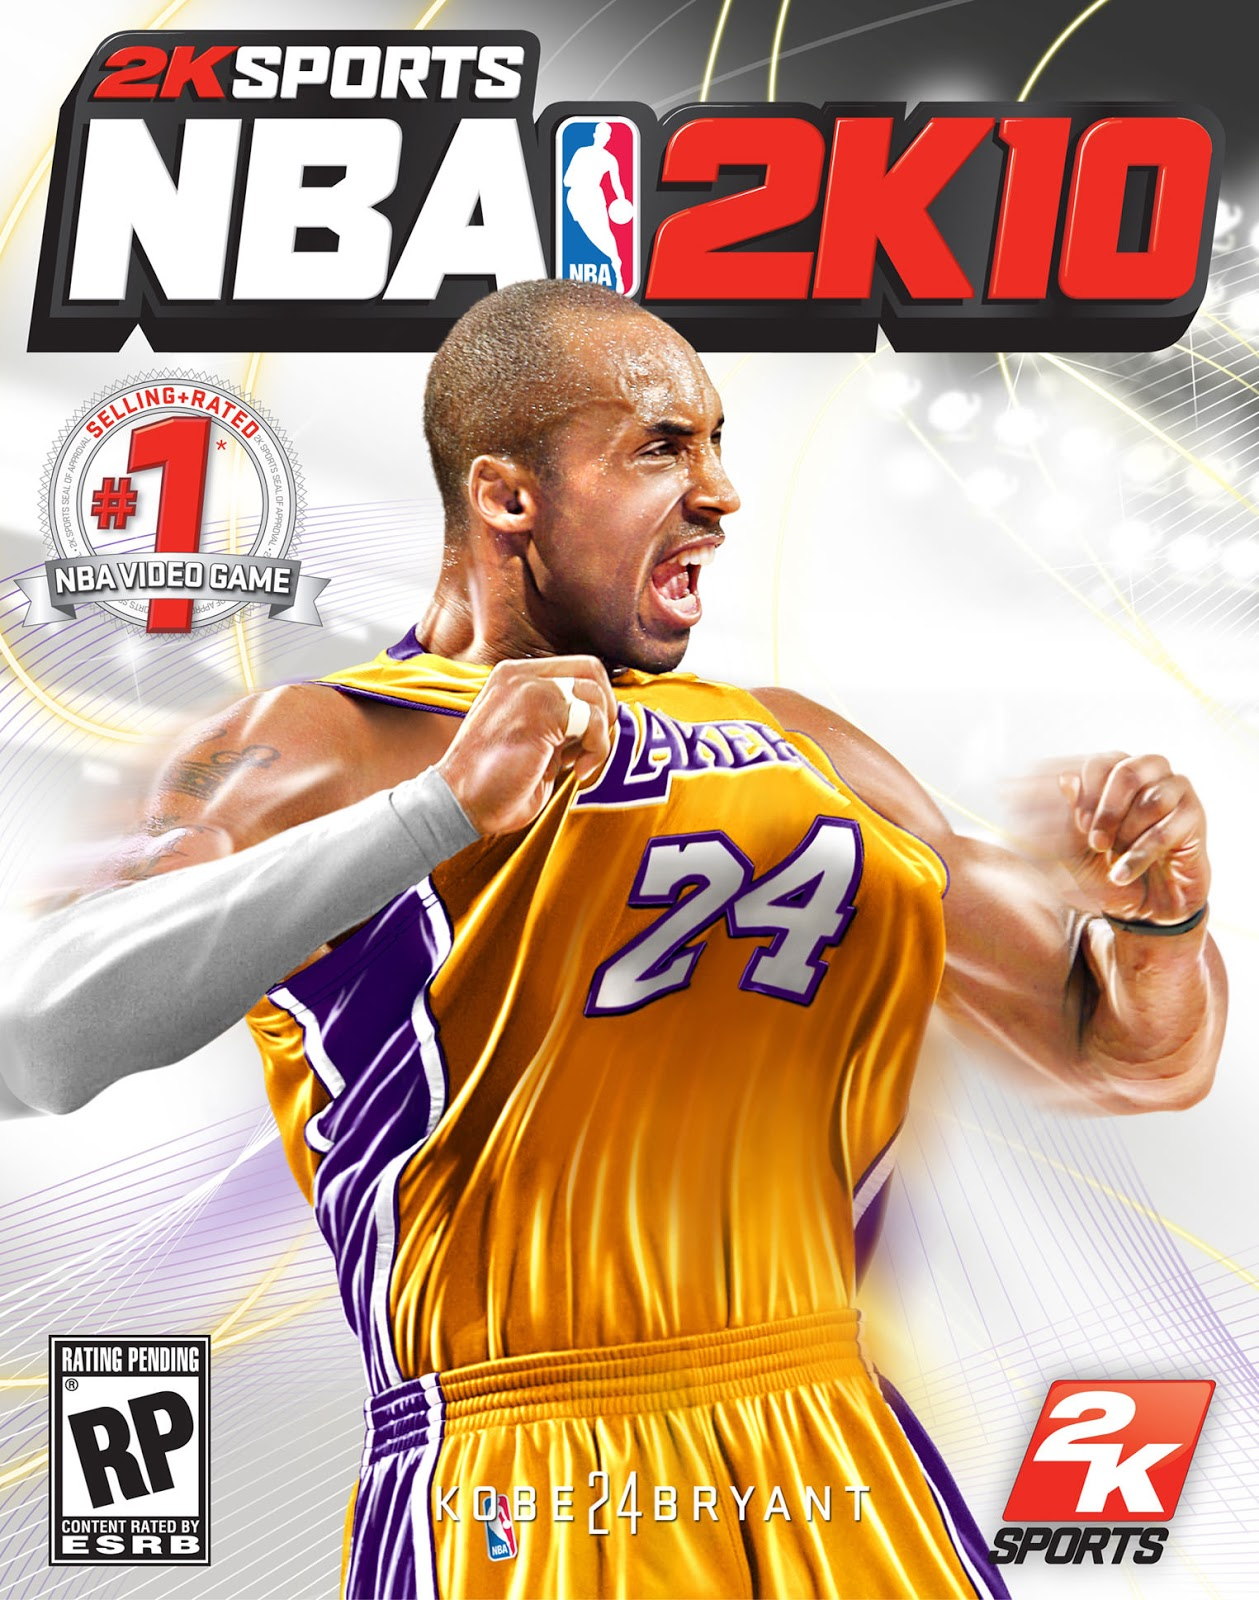 Kobe Bryant NBA 2k10 Cover Athlete